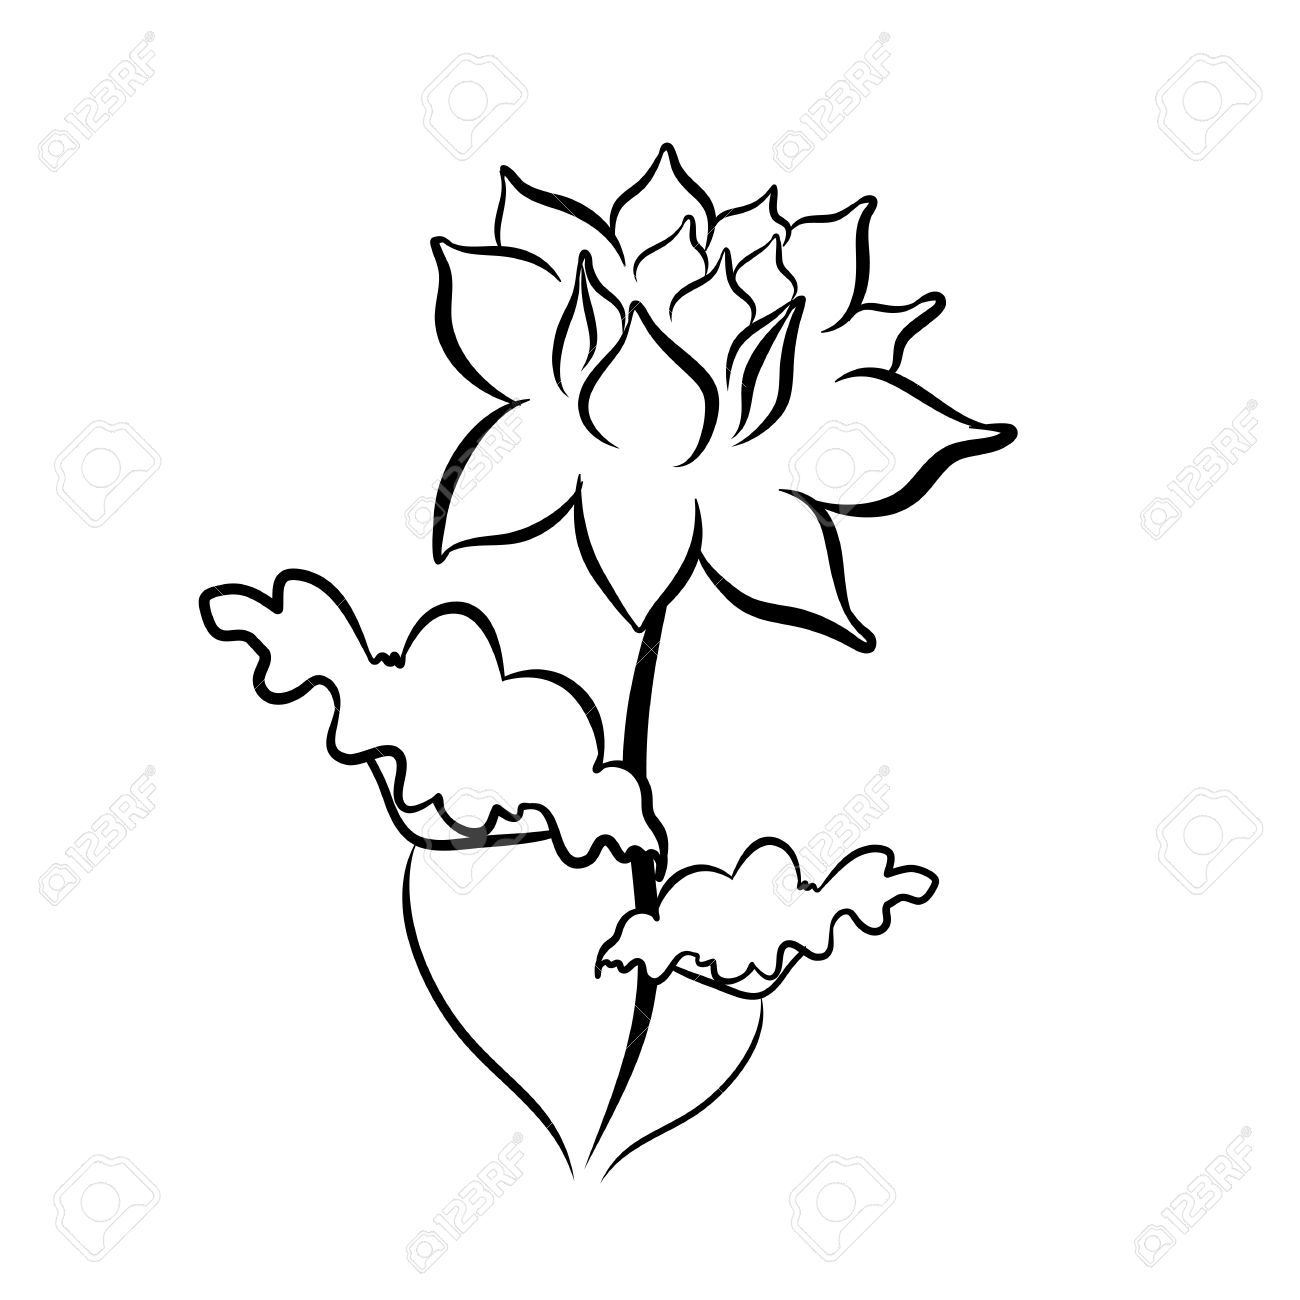 Sketch line drawing of lotus flower isolated illustration on sketch line drawing of lotus flower isolated illustration on white background stock vector 37095883 izmirmasajfo